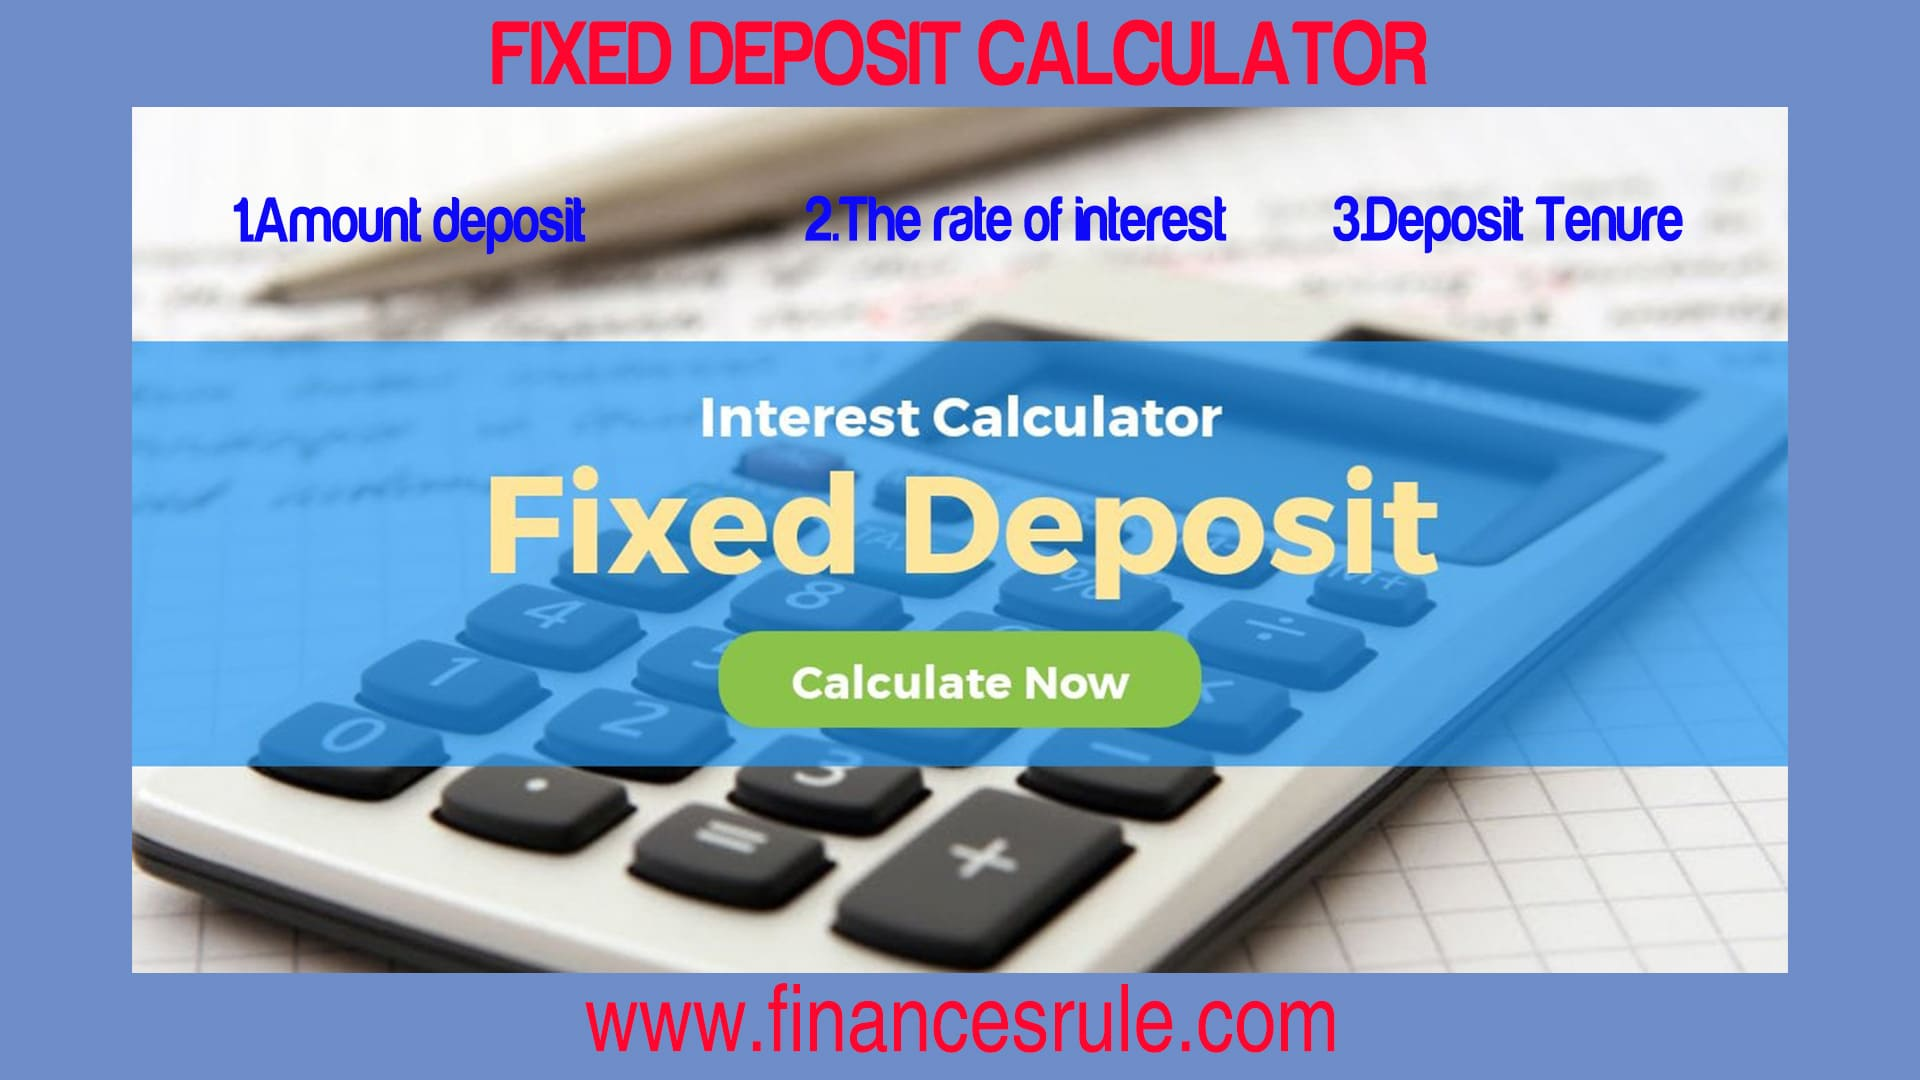 Fixed Deposit Calculator